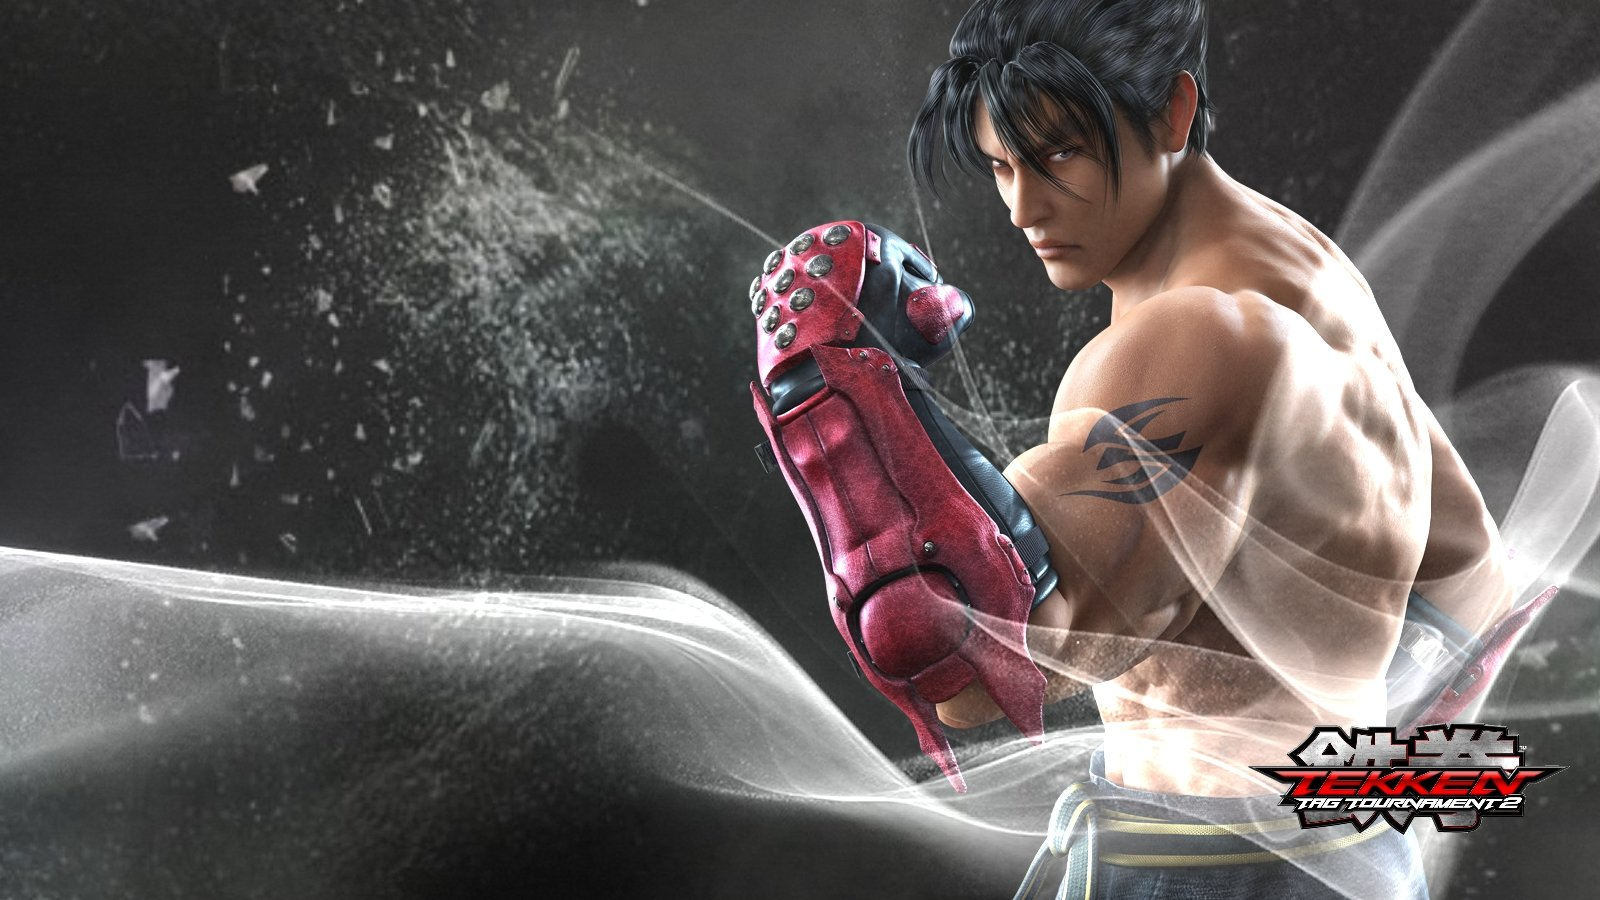 Wallpapers of jin kazama wallpapersafari the producer of tekken wants to continue the series on ps4 push 1600x900 voltagebd Gallery